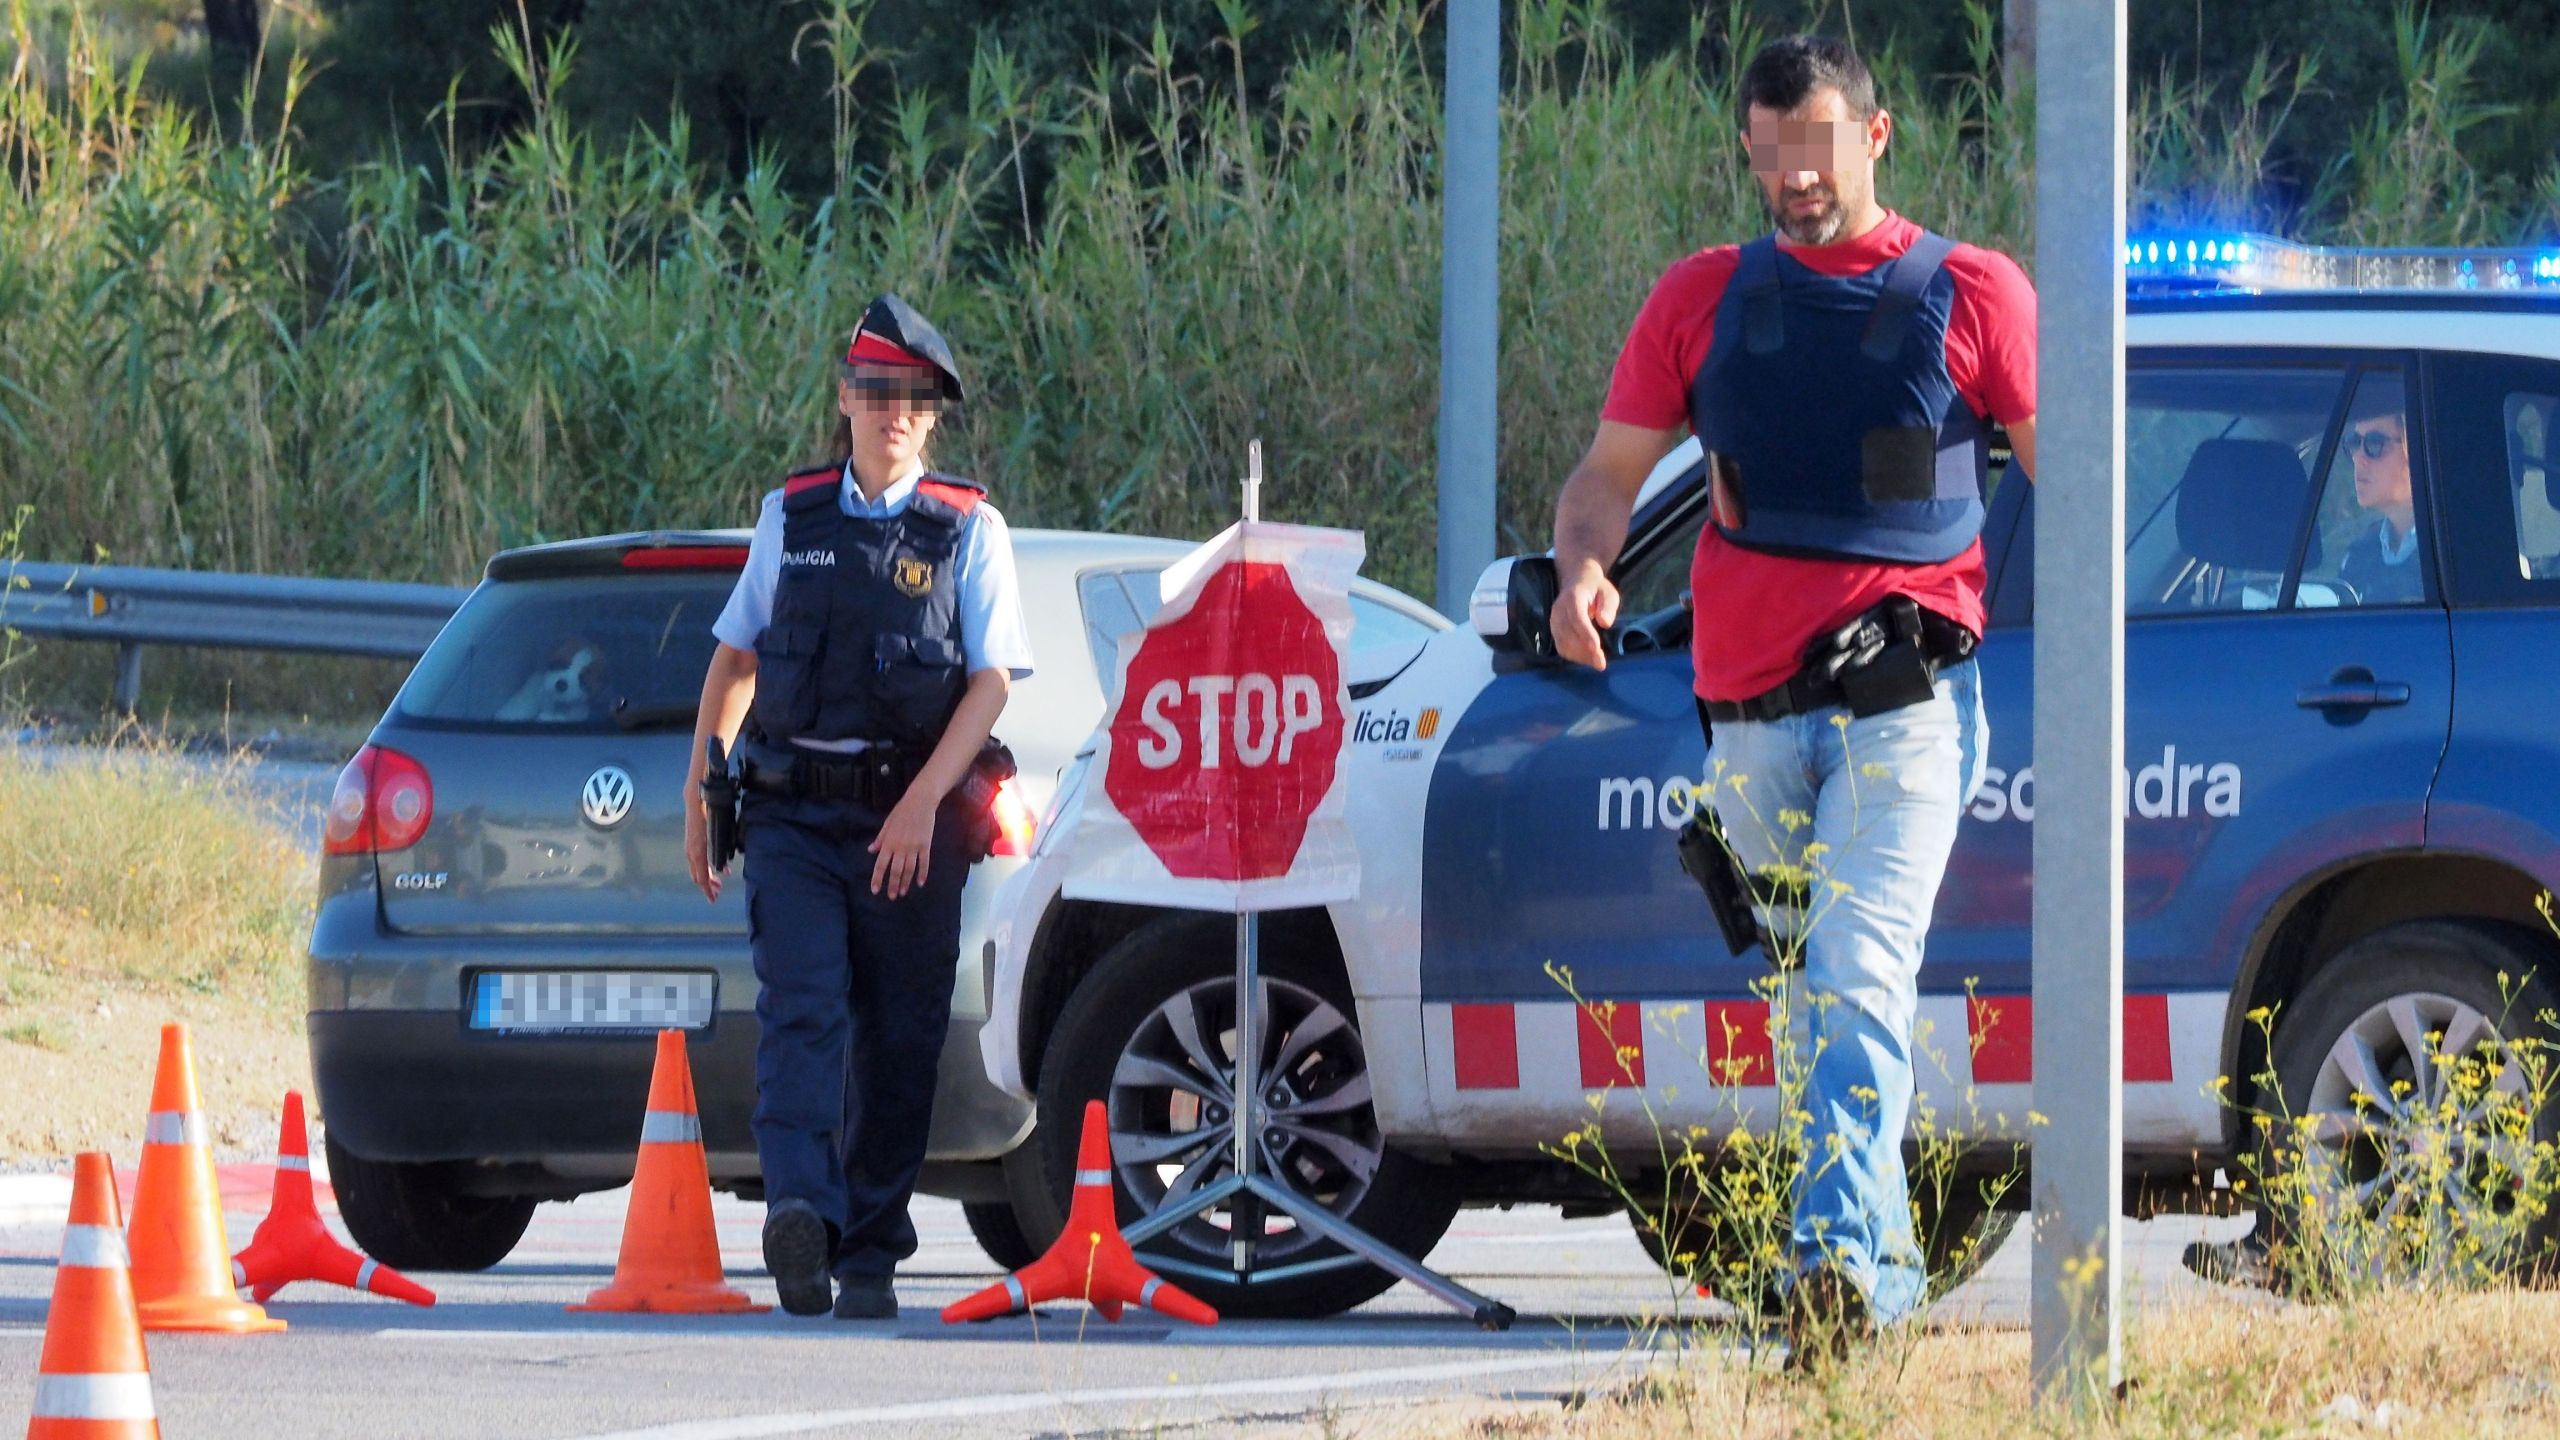 Spanish police officers control vehicles on their way to cross the Spain-France border between La Jonquera, northern Spain, and Le Perthus, southern France, on August 18, 2017. (Credit: RAYMOND ROIG/AFP/Getty Images)